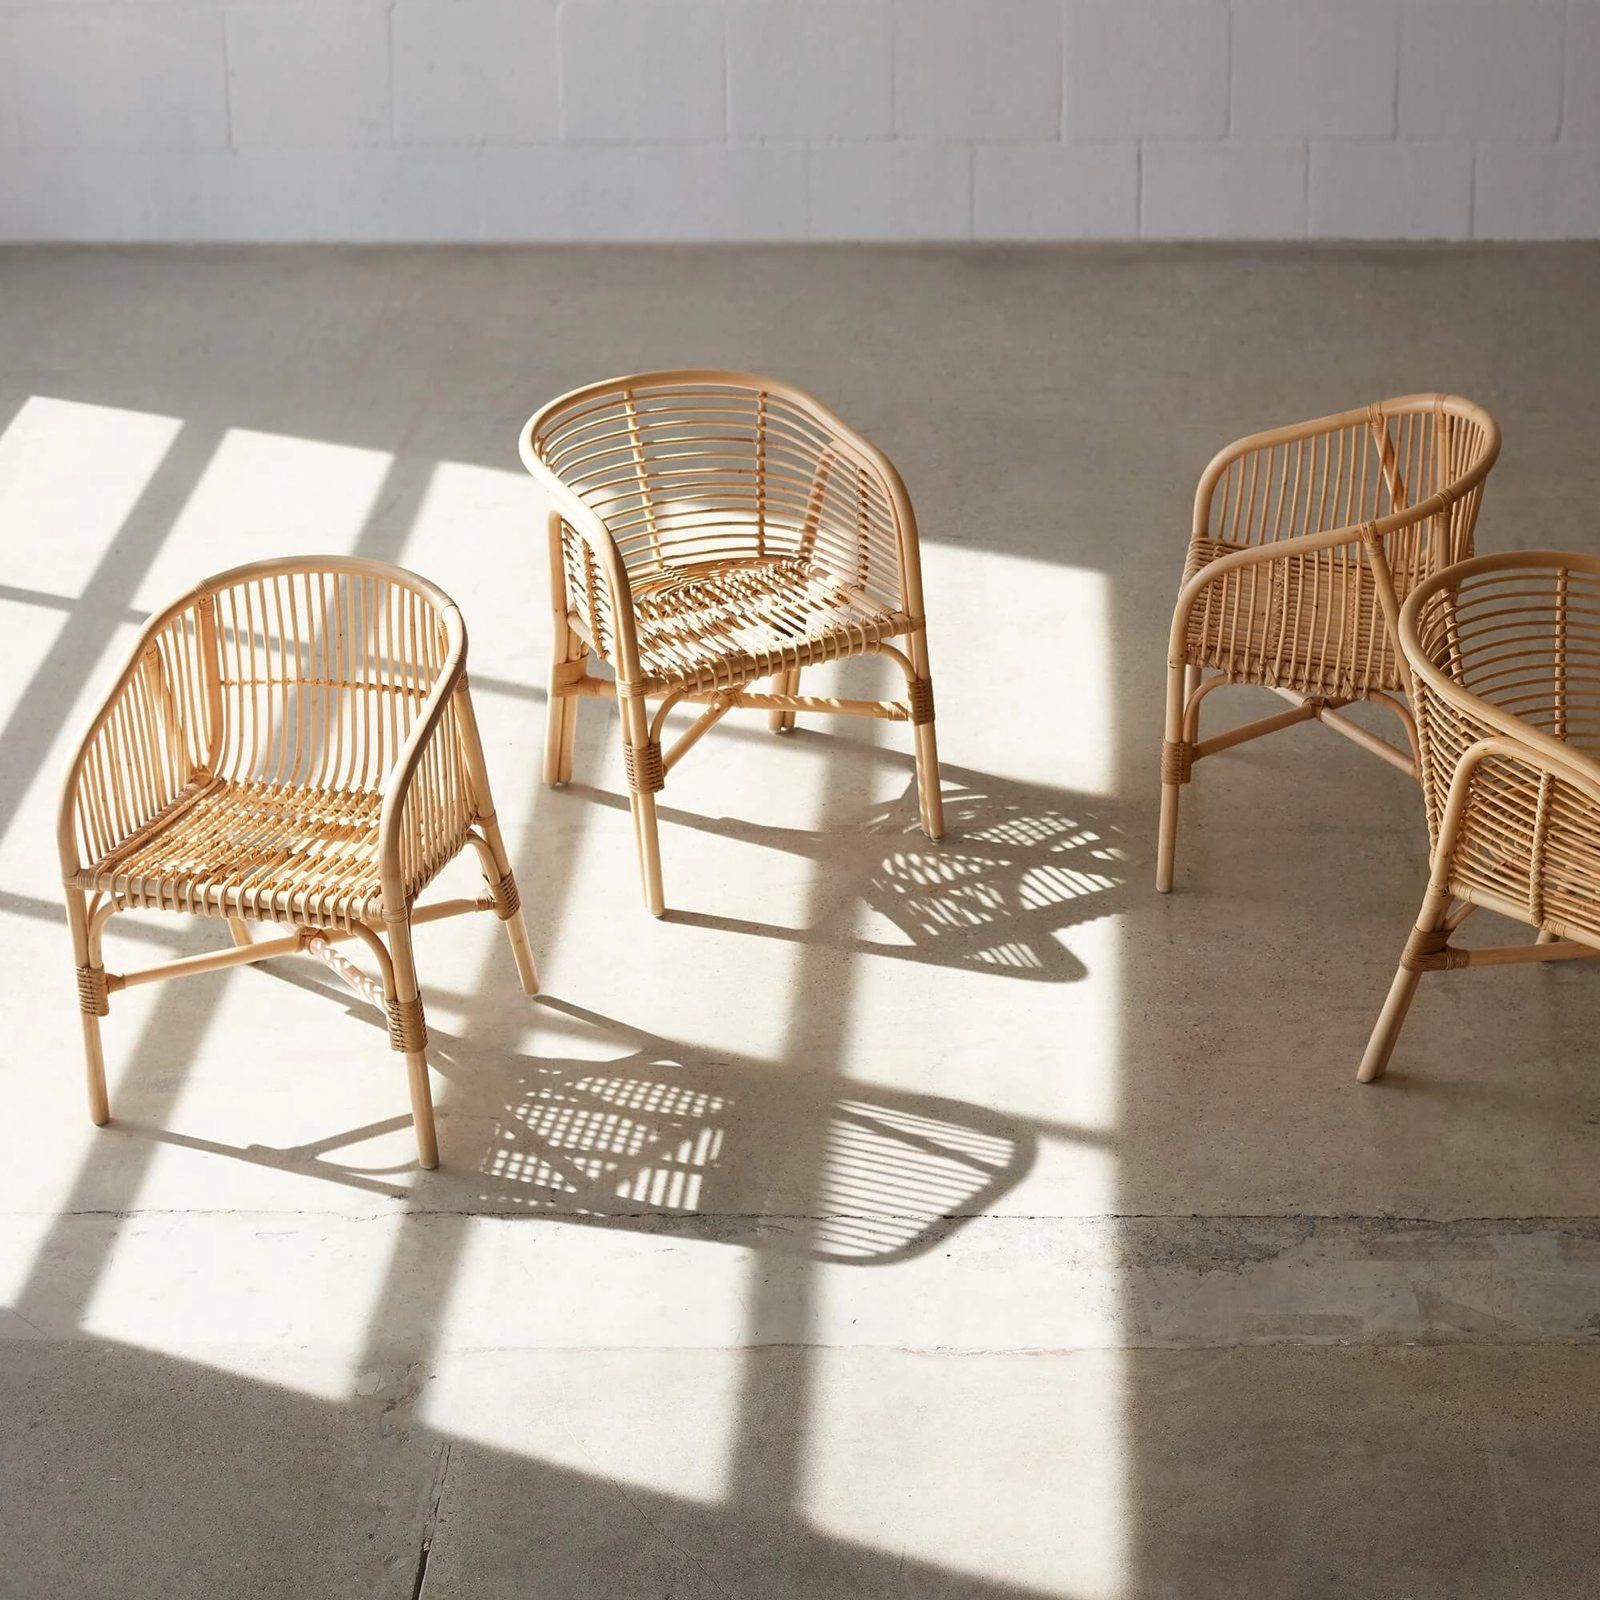 Lombok Rattan Lounge Chair by Artisans of Cirebon for The ...